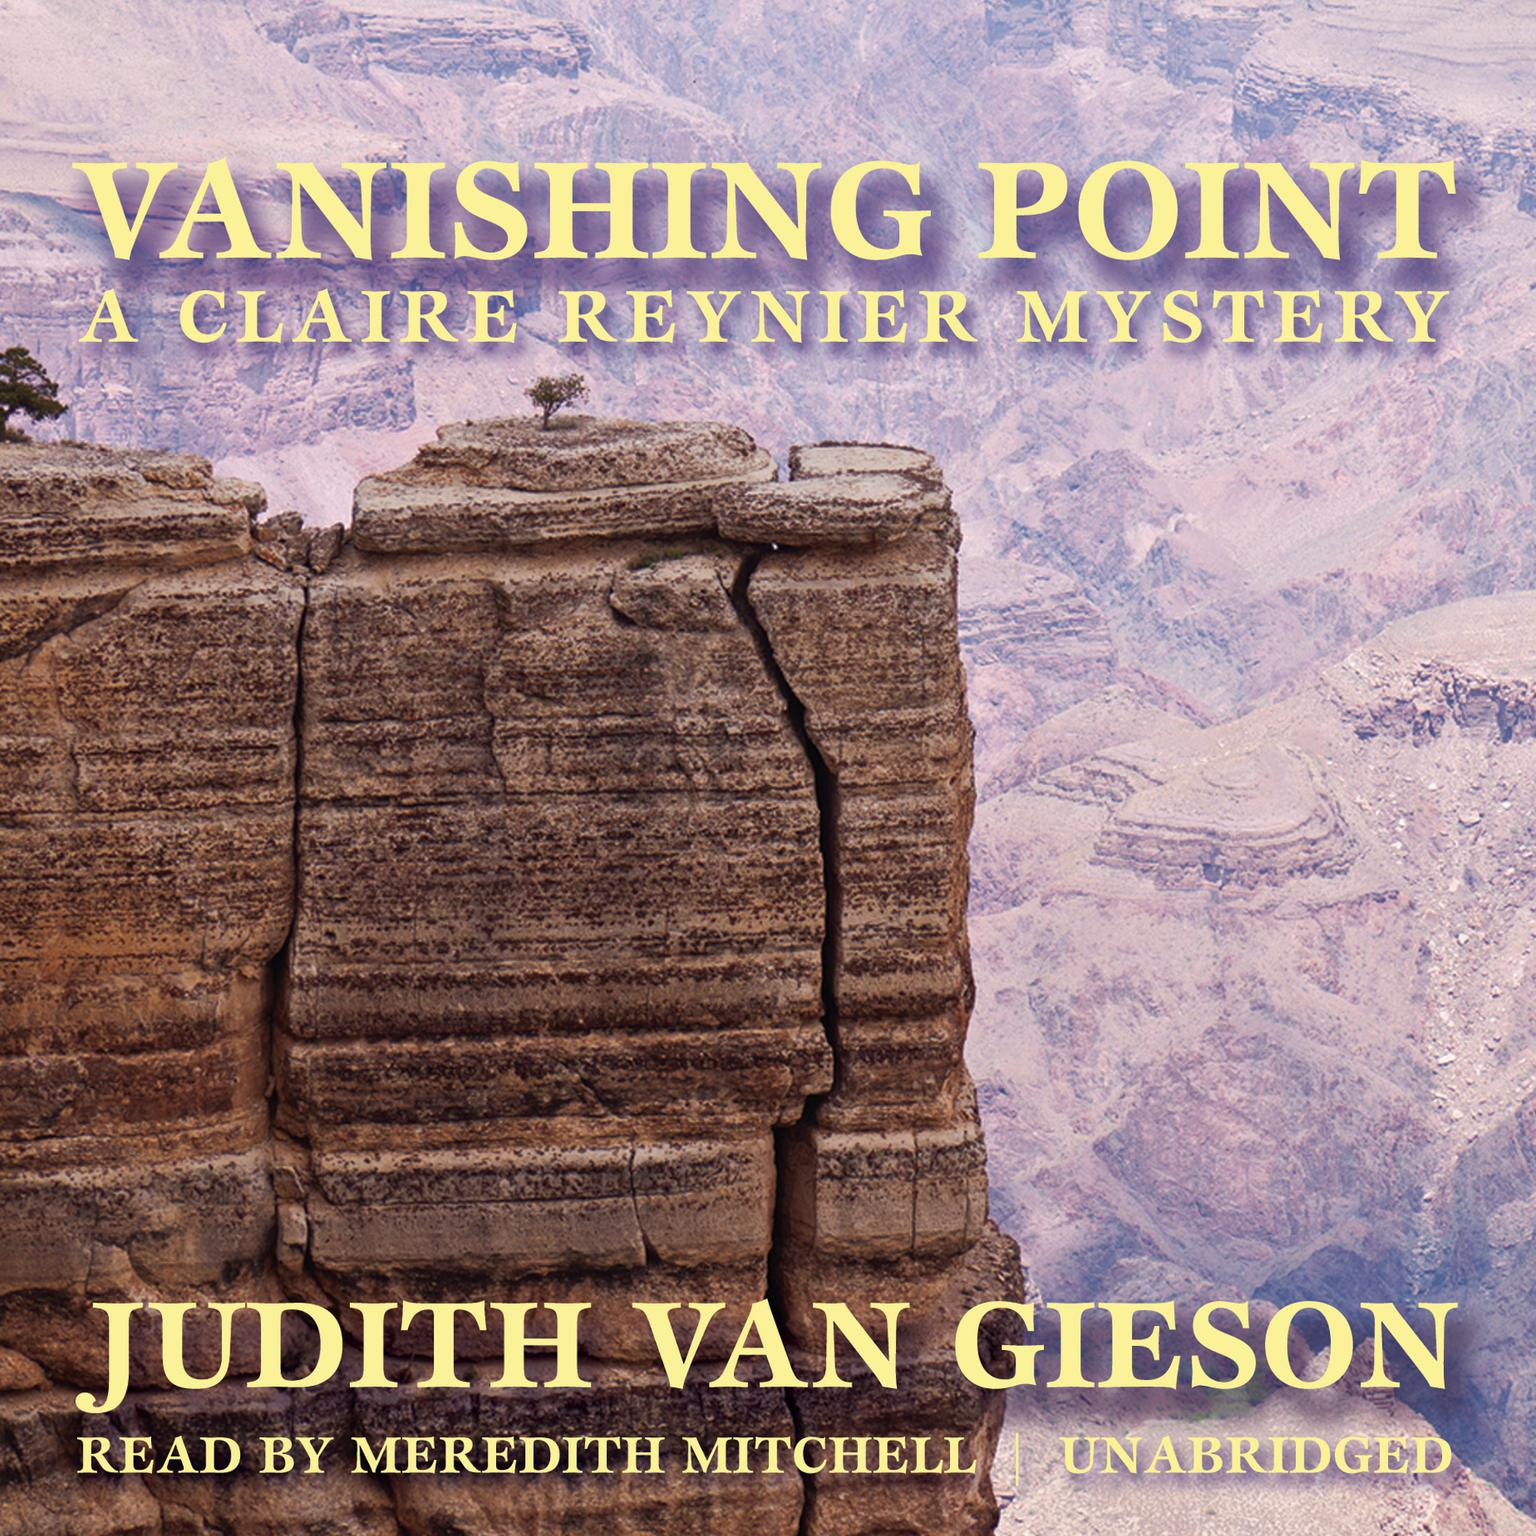 Printable Vanishing Point Audiobook Cover Art